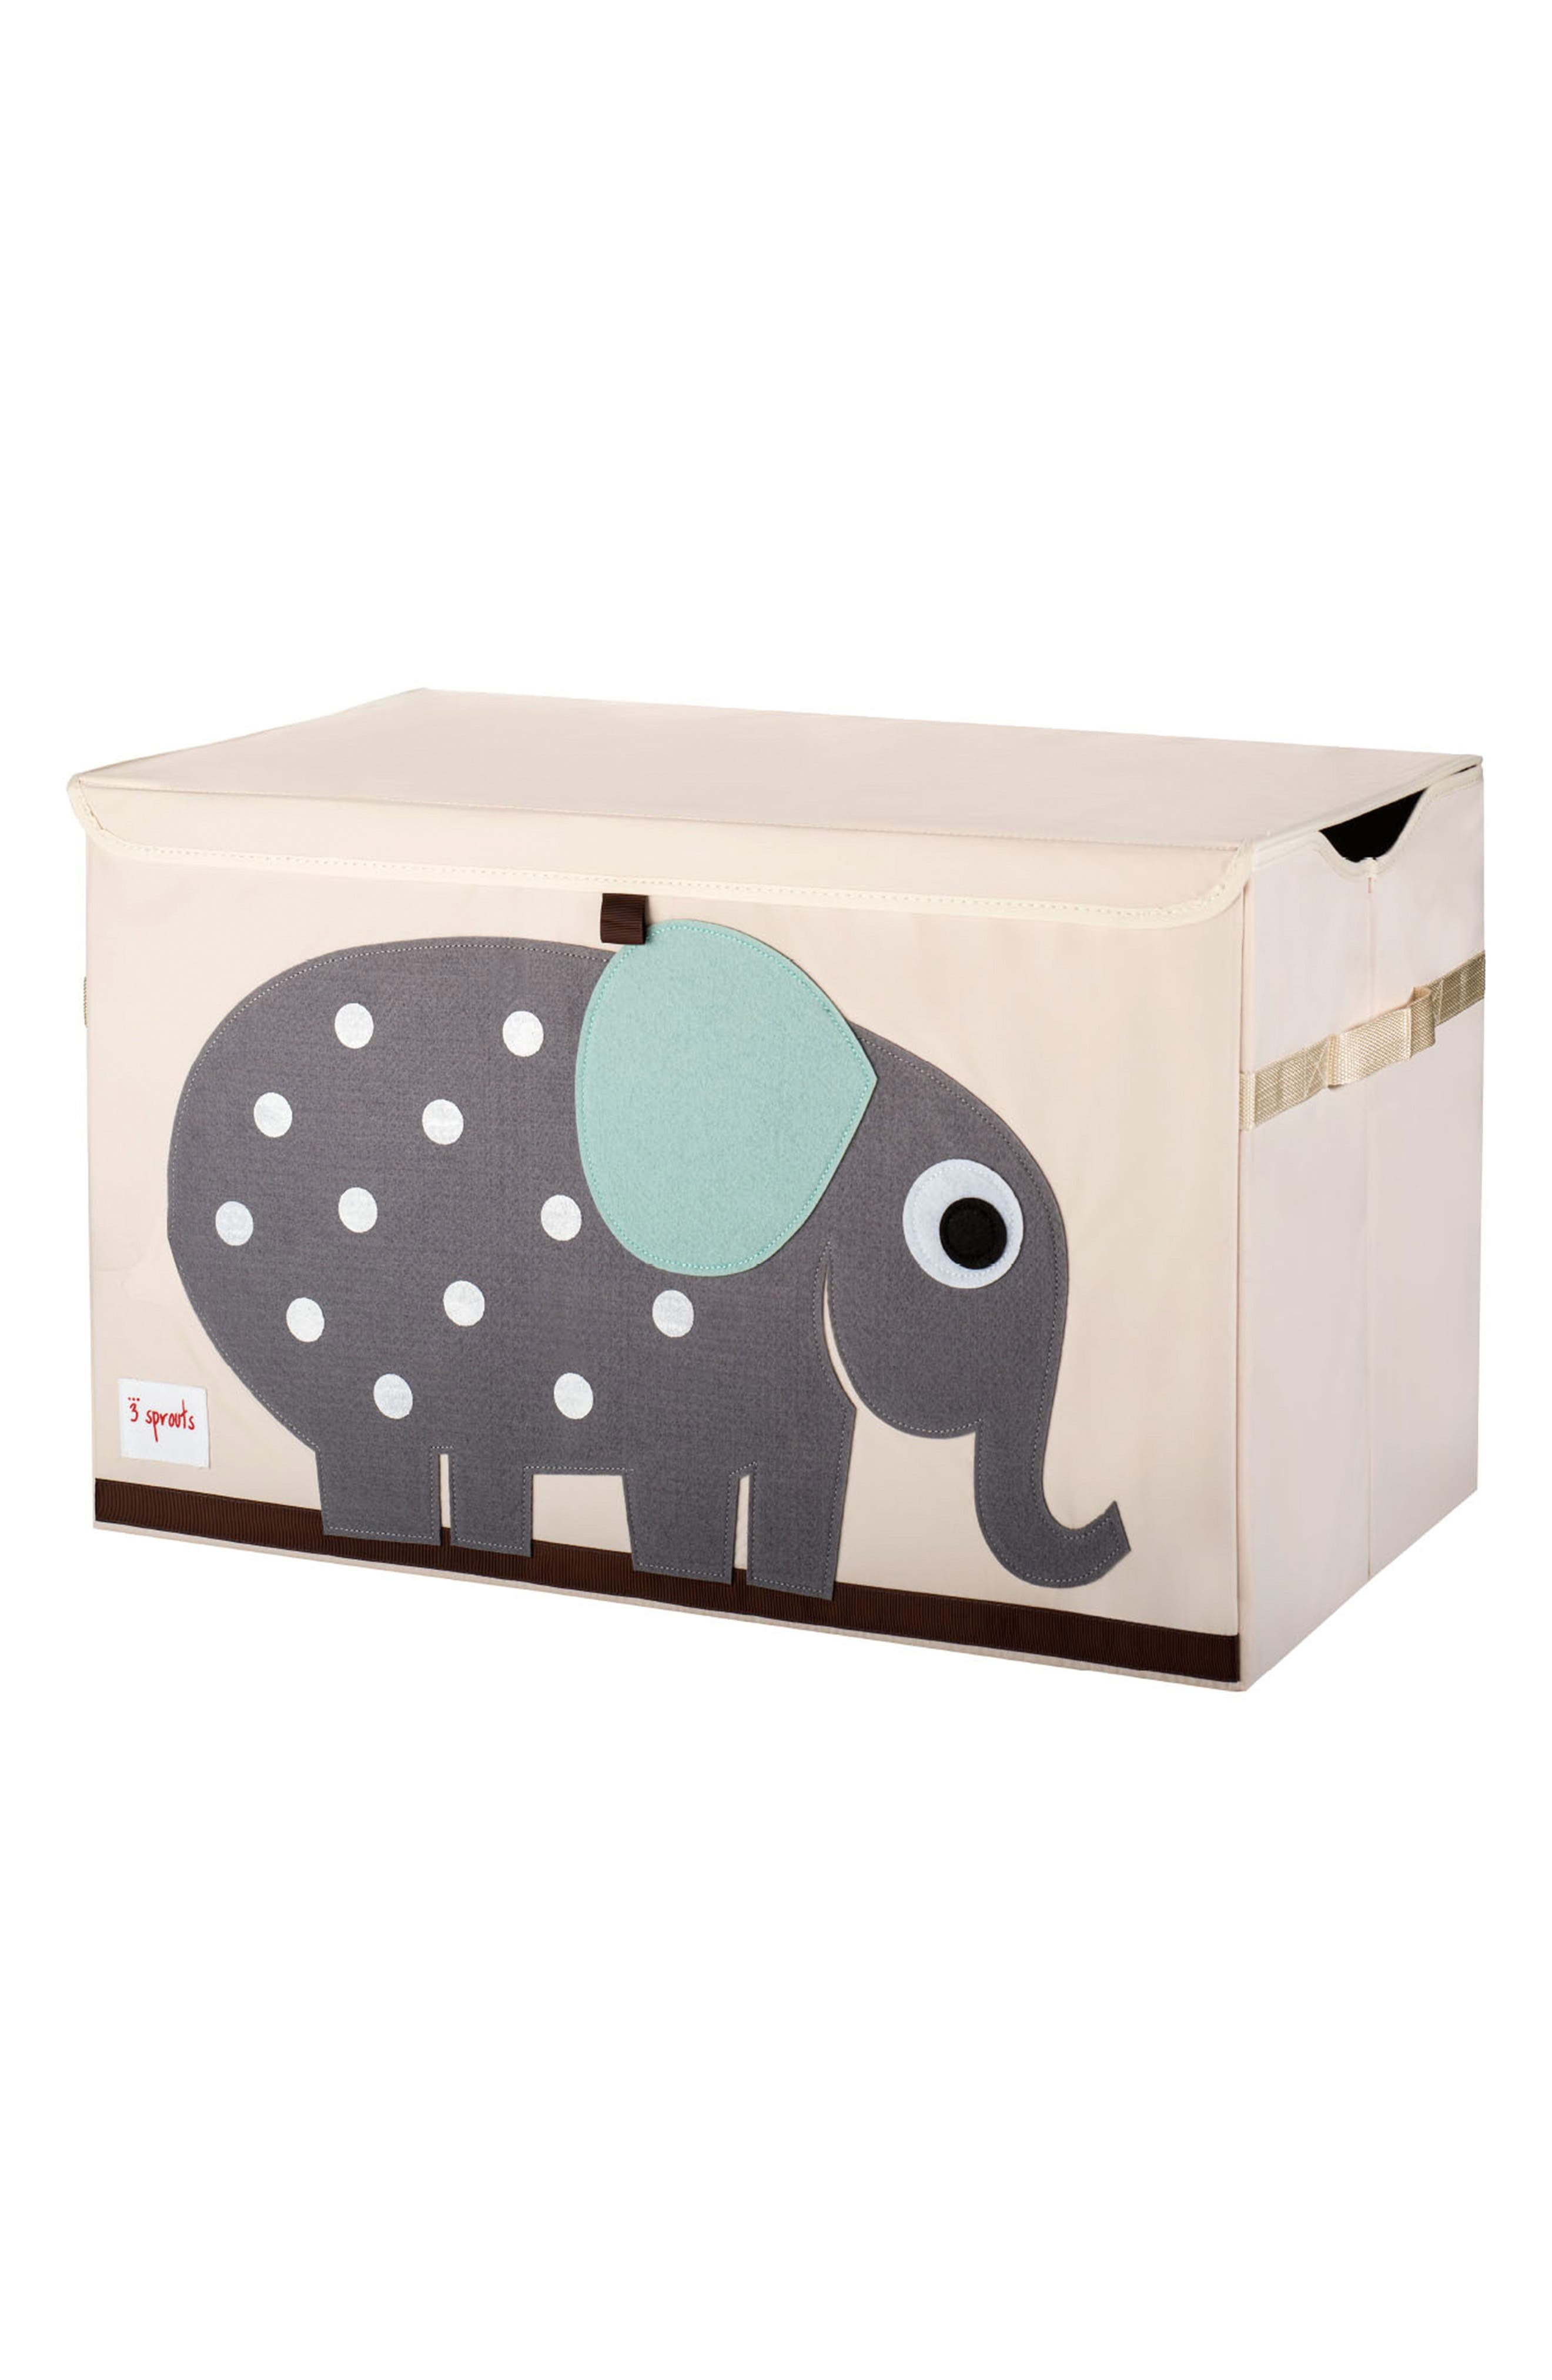 Elephant Toy Chest,                             Main thumbnail 1, color,                             Gray